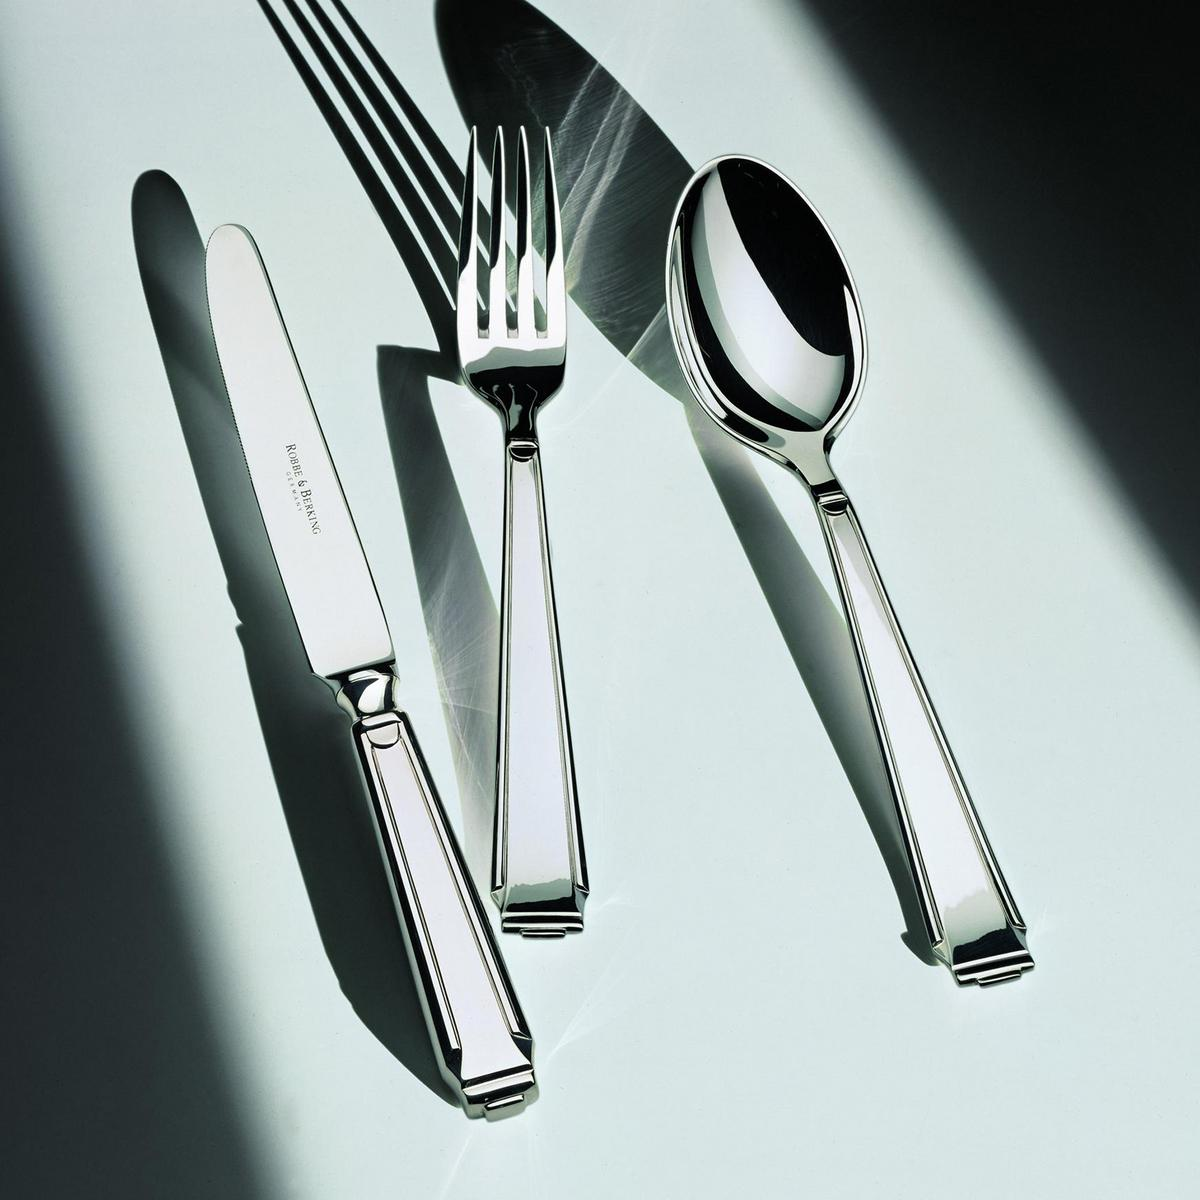 robbe berking art deco cutlery sterling silver. Black Bedroom Furniture Sets. Home Design Ideas